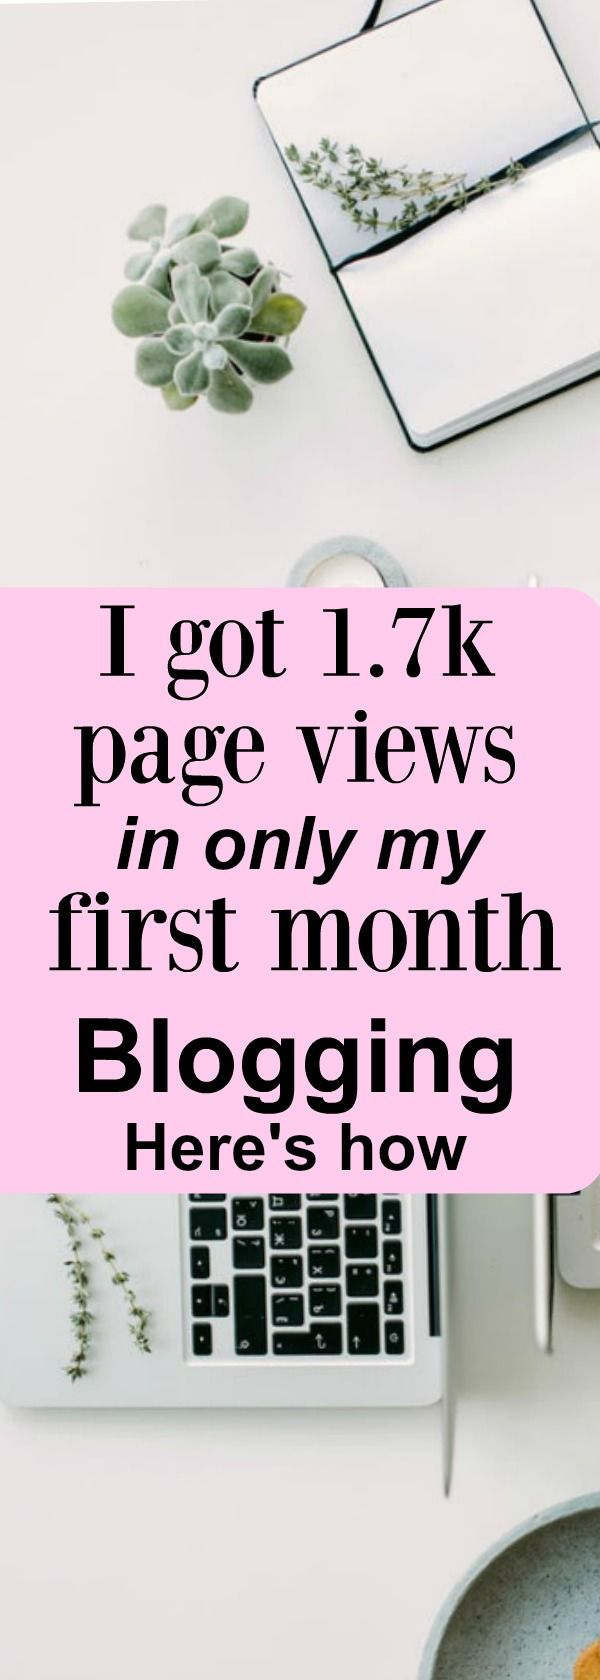 I surpassed my 1st month of blogging goals and you can too with these 7 strategies!